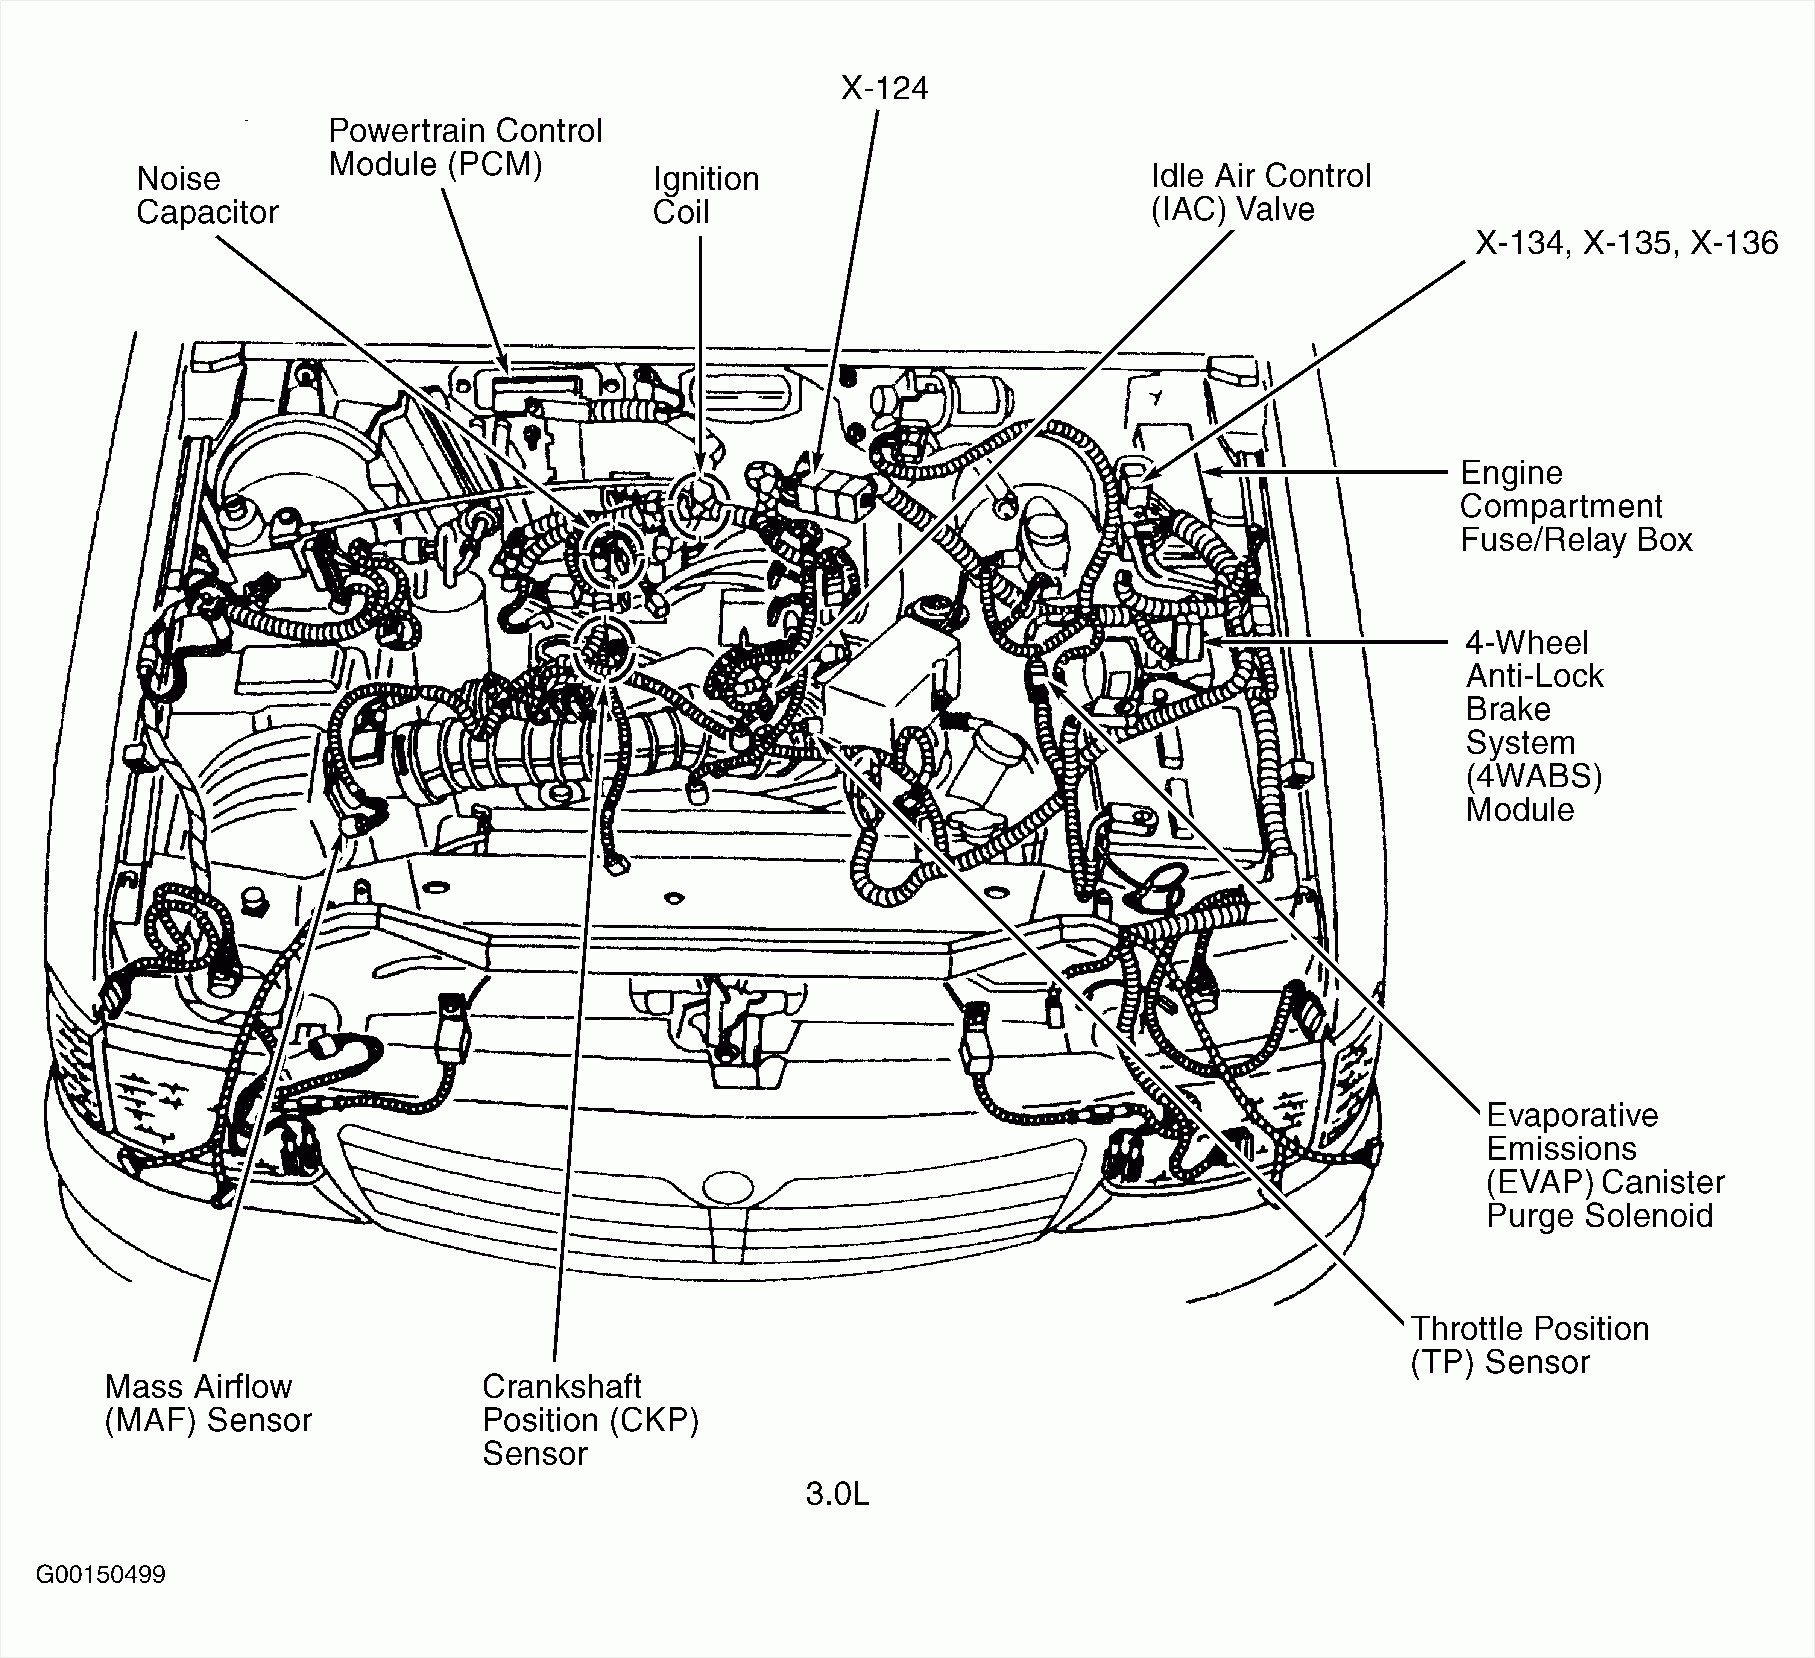 2002 Vw Jetta Tdi Engine Diagram Wiring Diagrams Management Metal Management Metal Alcuoredeldiabete It